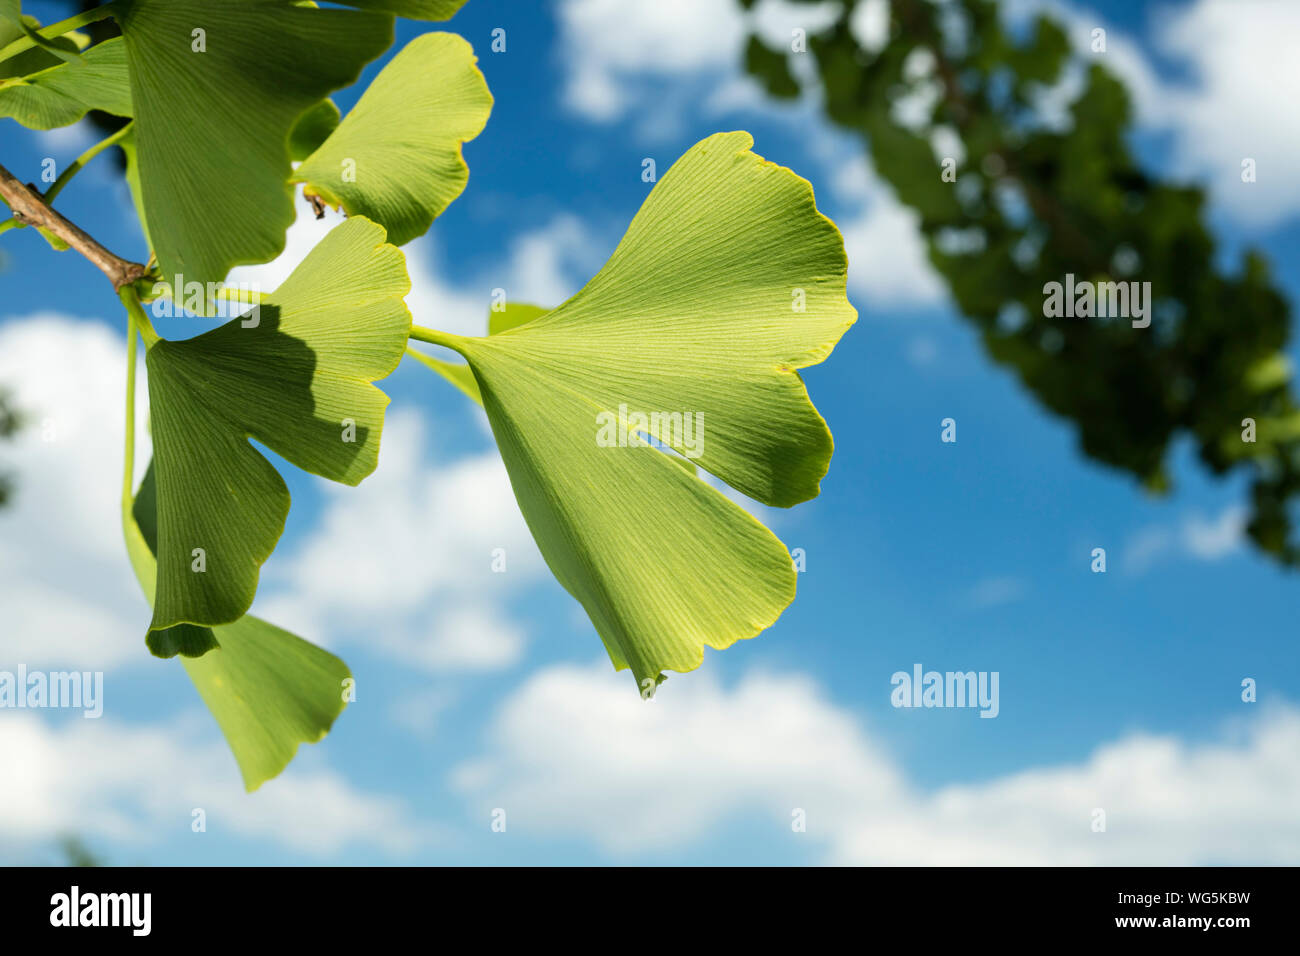 Low Angle View Of Fresh Green Leaf Against Sky Stock Photo